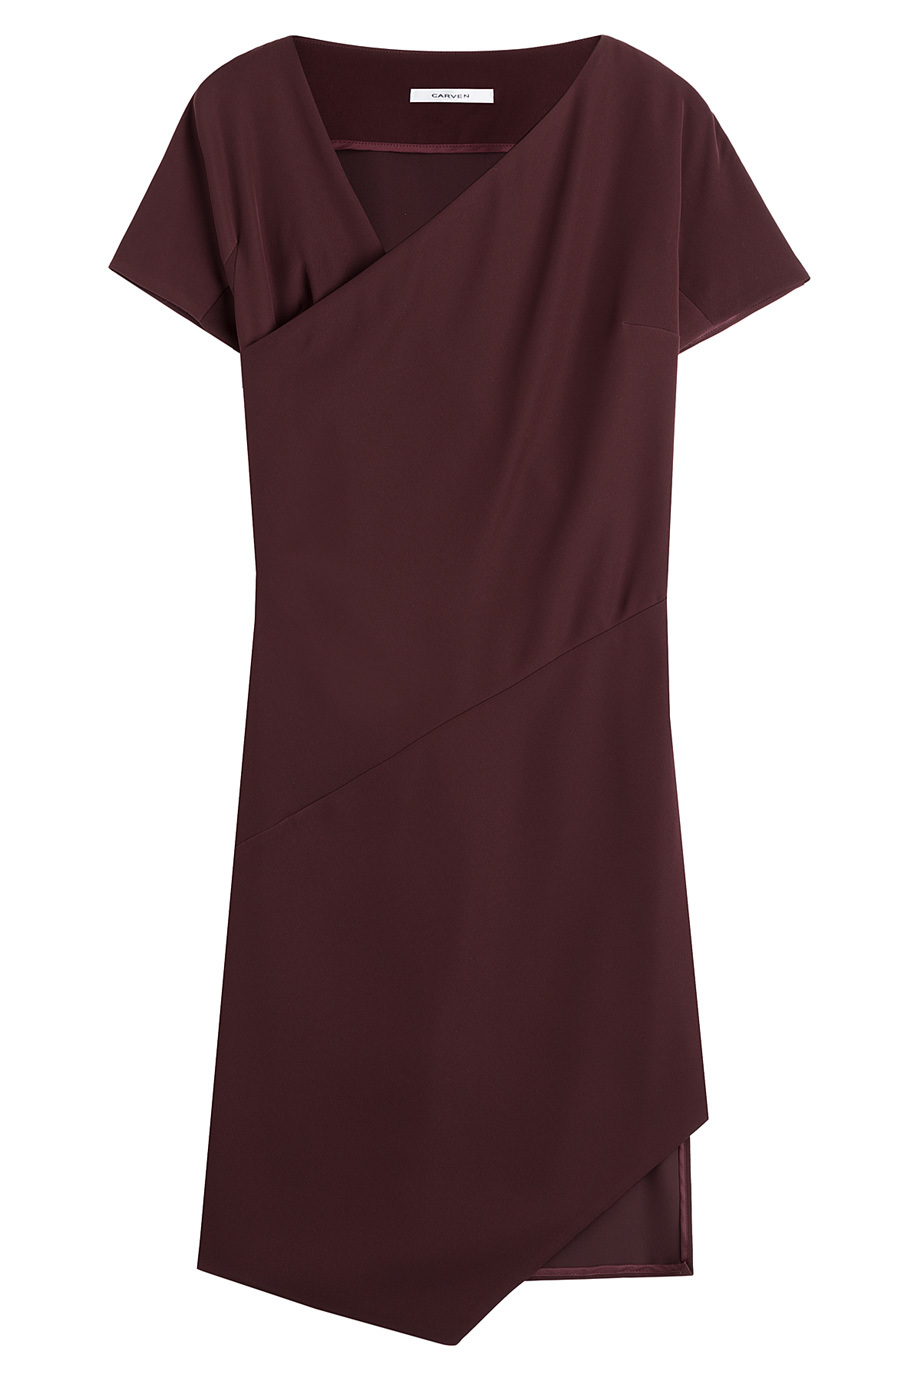 Dress With Asymmetric Hem Red - pattern: plain; neckline: asymmetric; predominant colour: burgundy; occasions: evening, occasion, creative work; length: on the knee; fit: body skimming; style: asymmetric (hem); fibres: polyester/polyamide - 100%; sleeve length: short sleeve; sleeve style: standard; pattern type: fabric; texture group: jersey - stretchy/drapey; season: a/w 2015